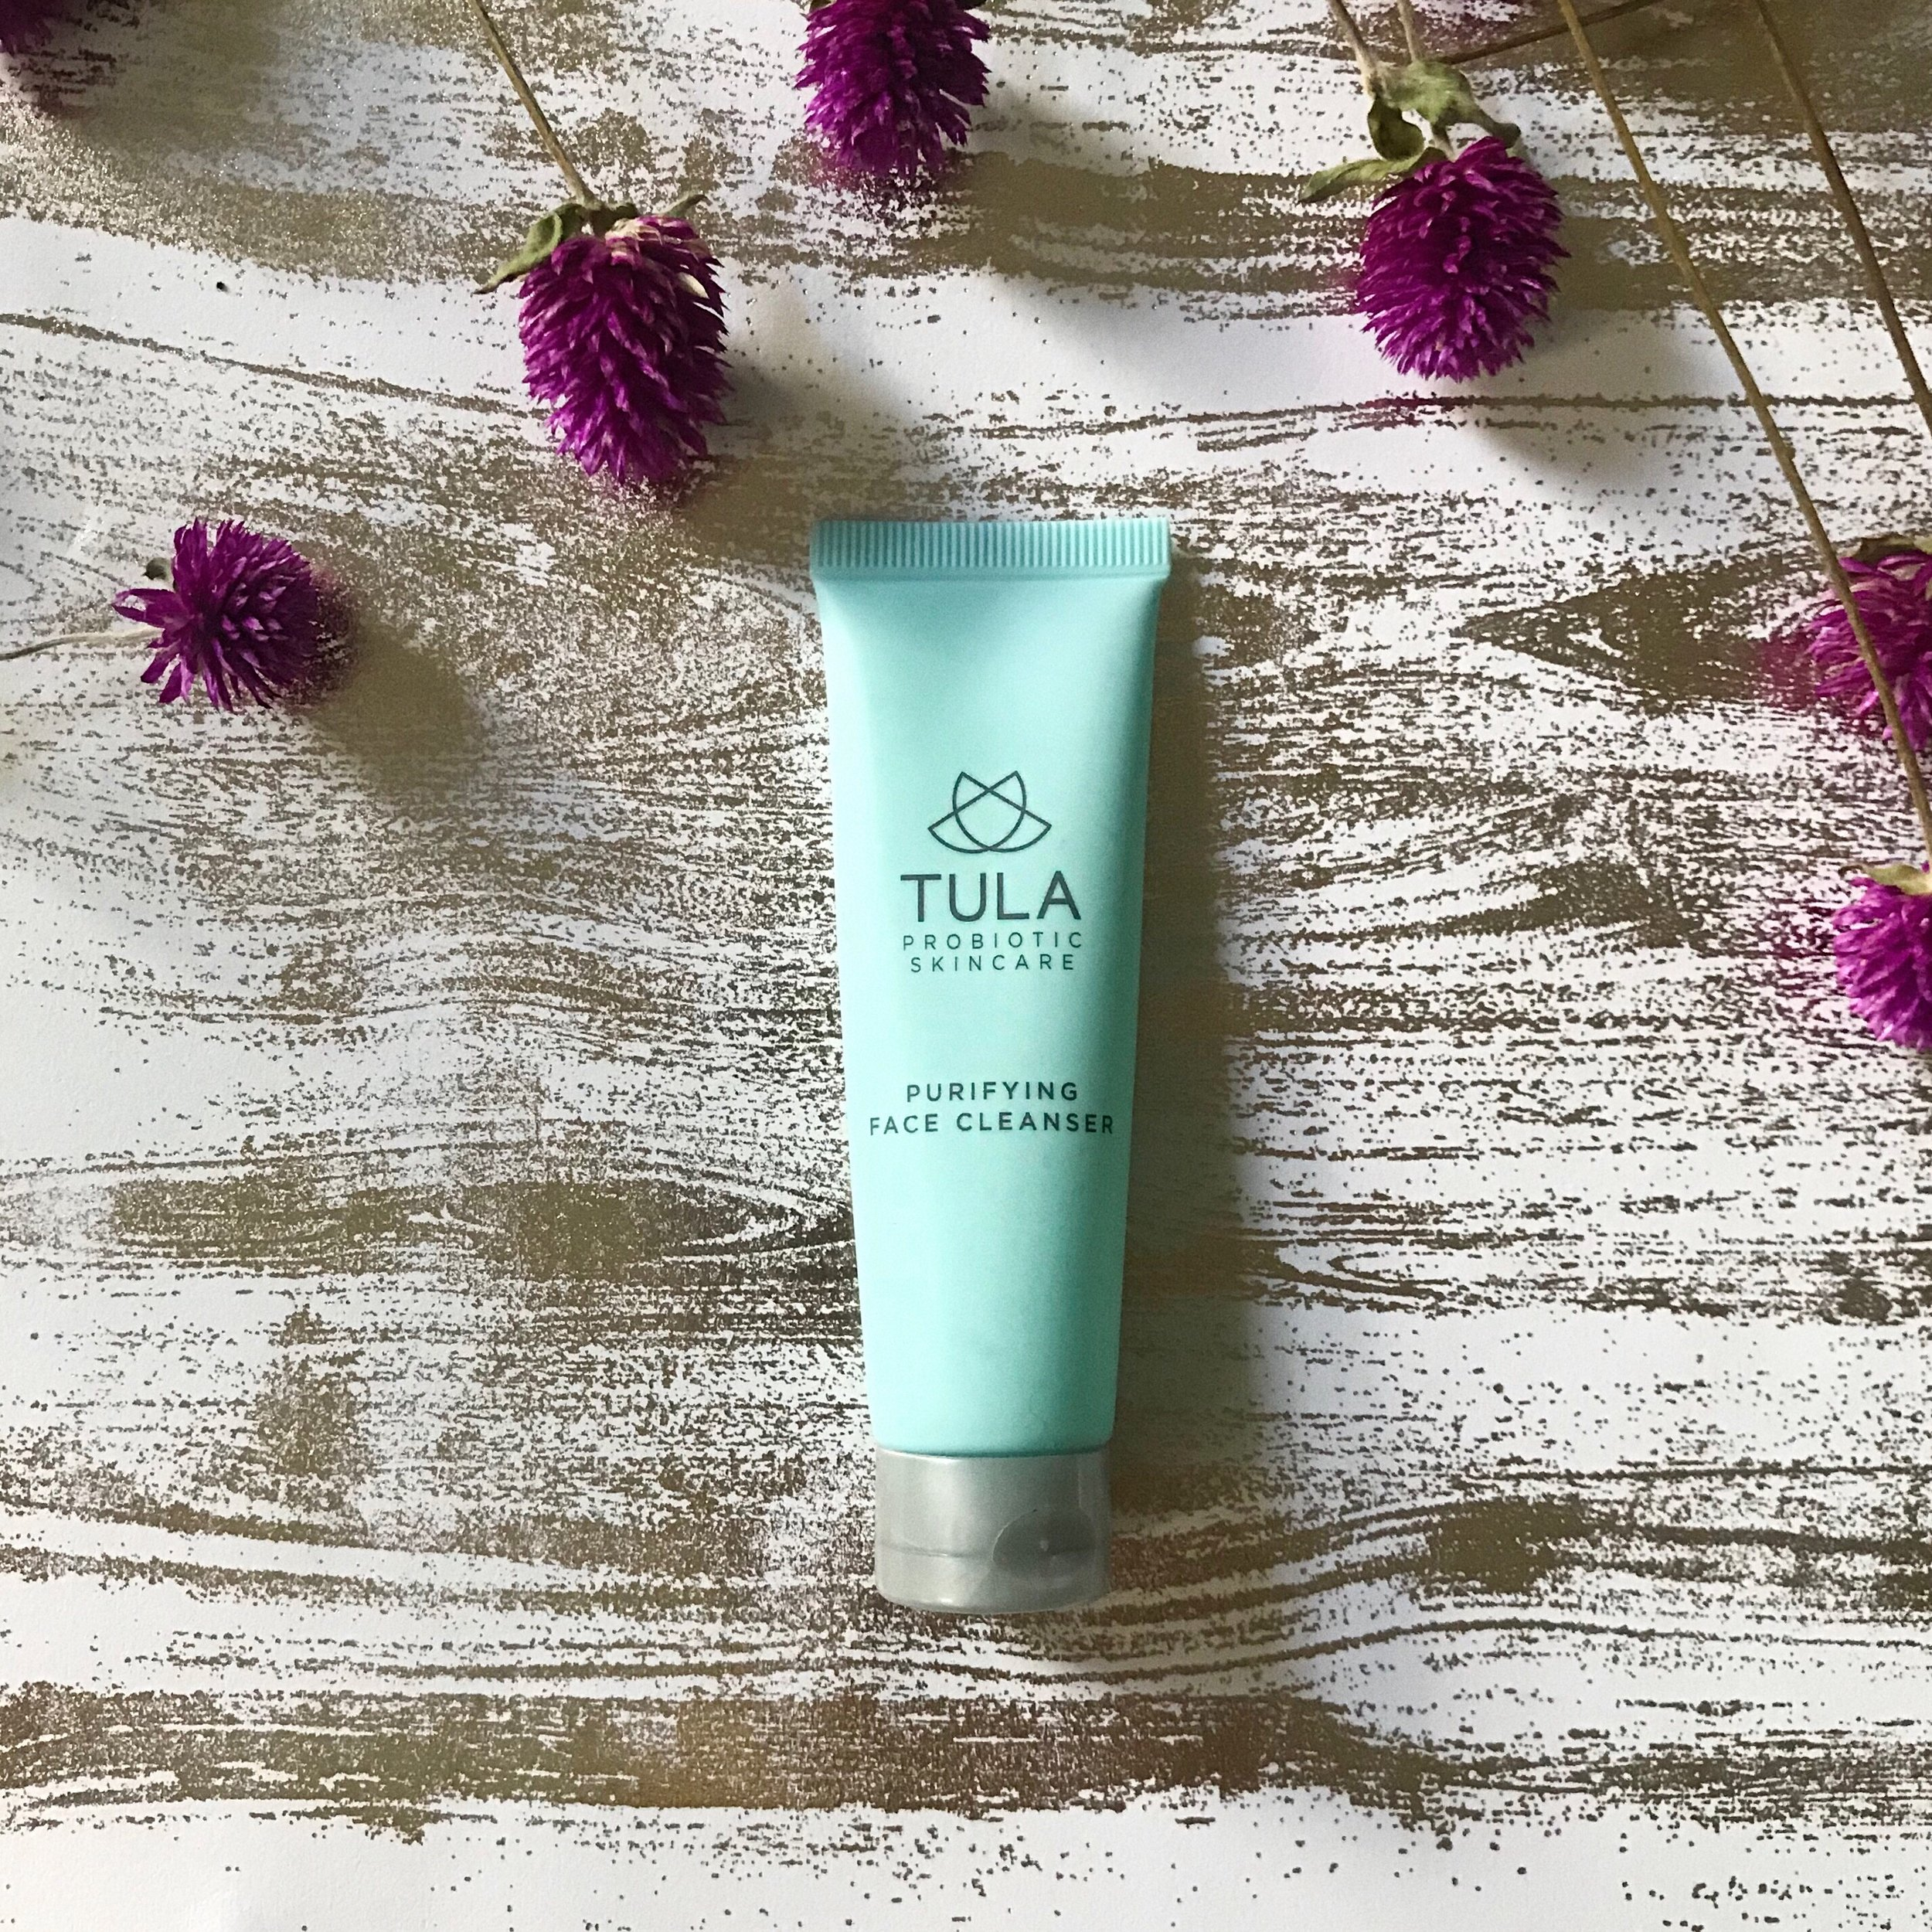 Tula Skincare Purifying Face Cleanser 1 fl oz.